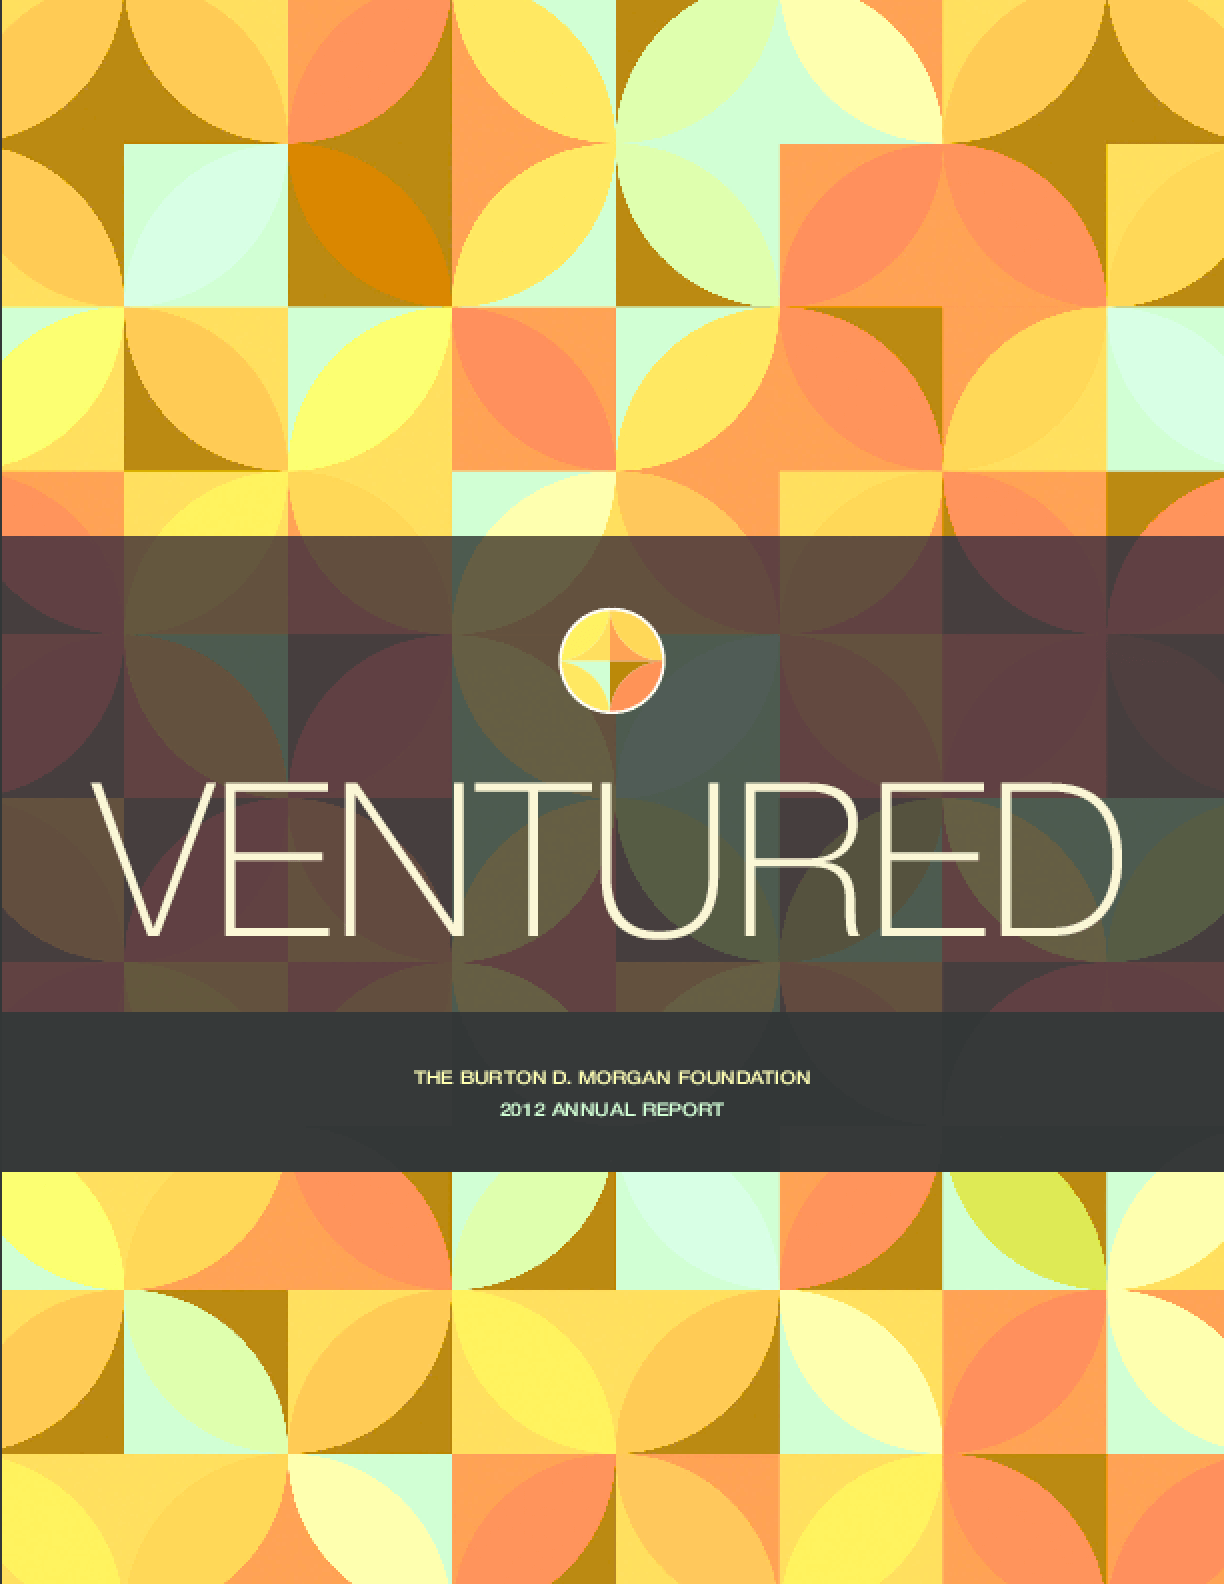 Ventured: The Burton D. Morgan Foundation 2012 Annual Report